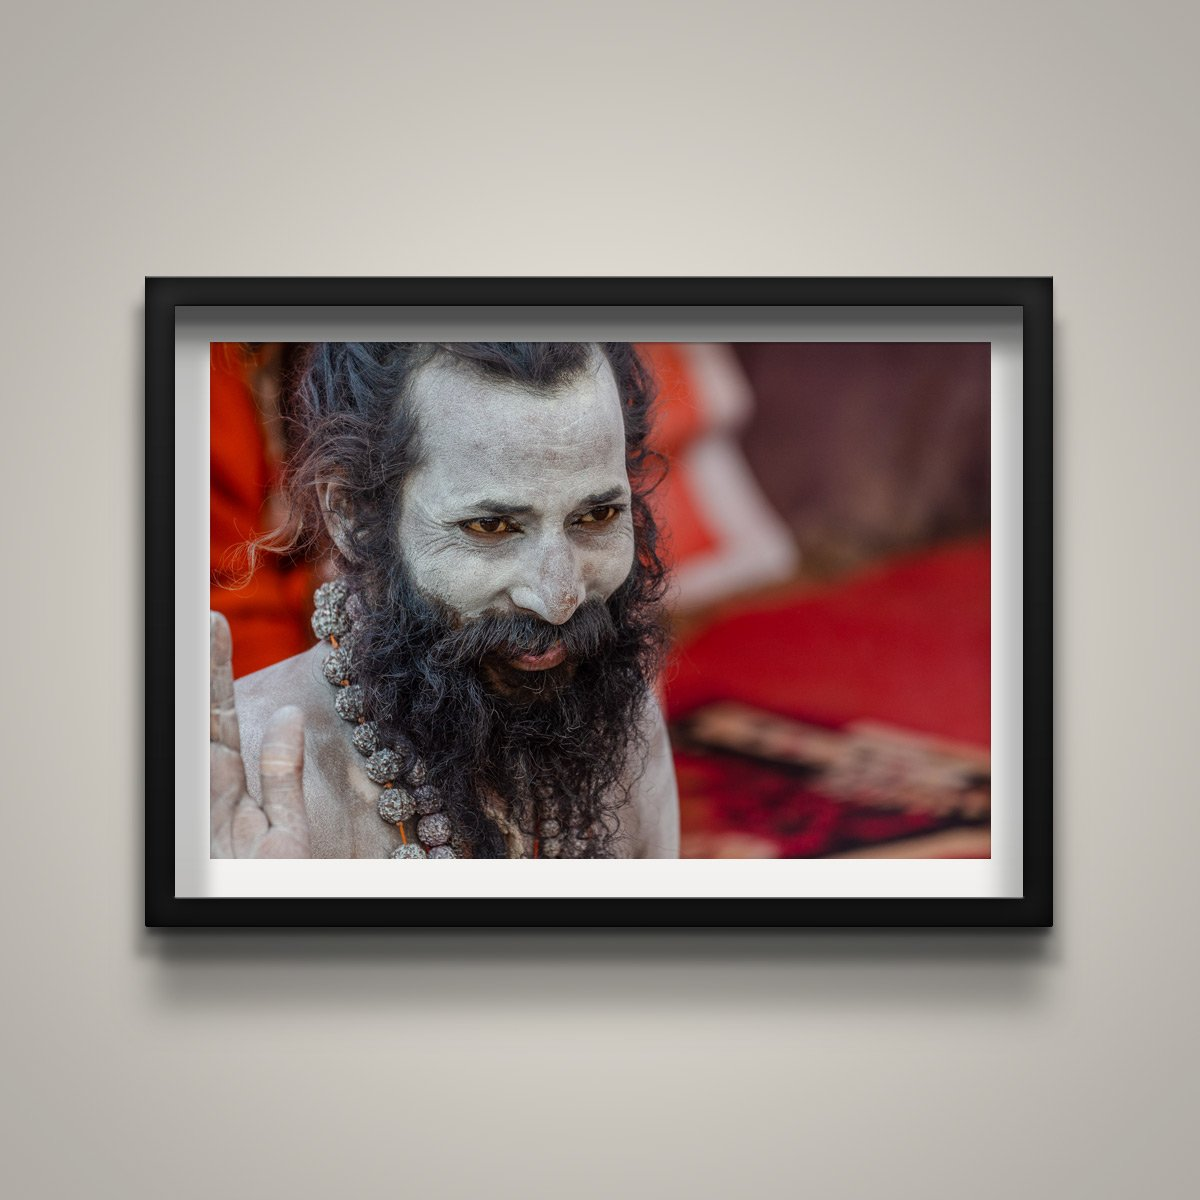 Naga Sadhu with Red